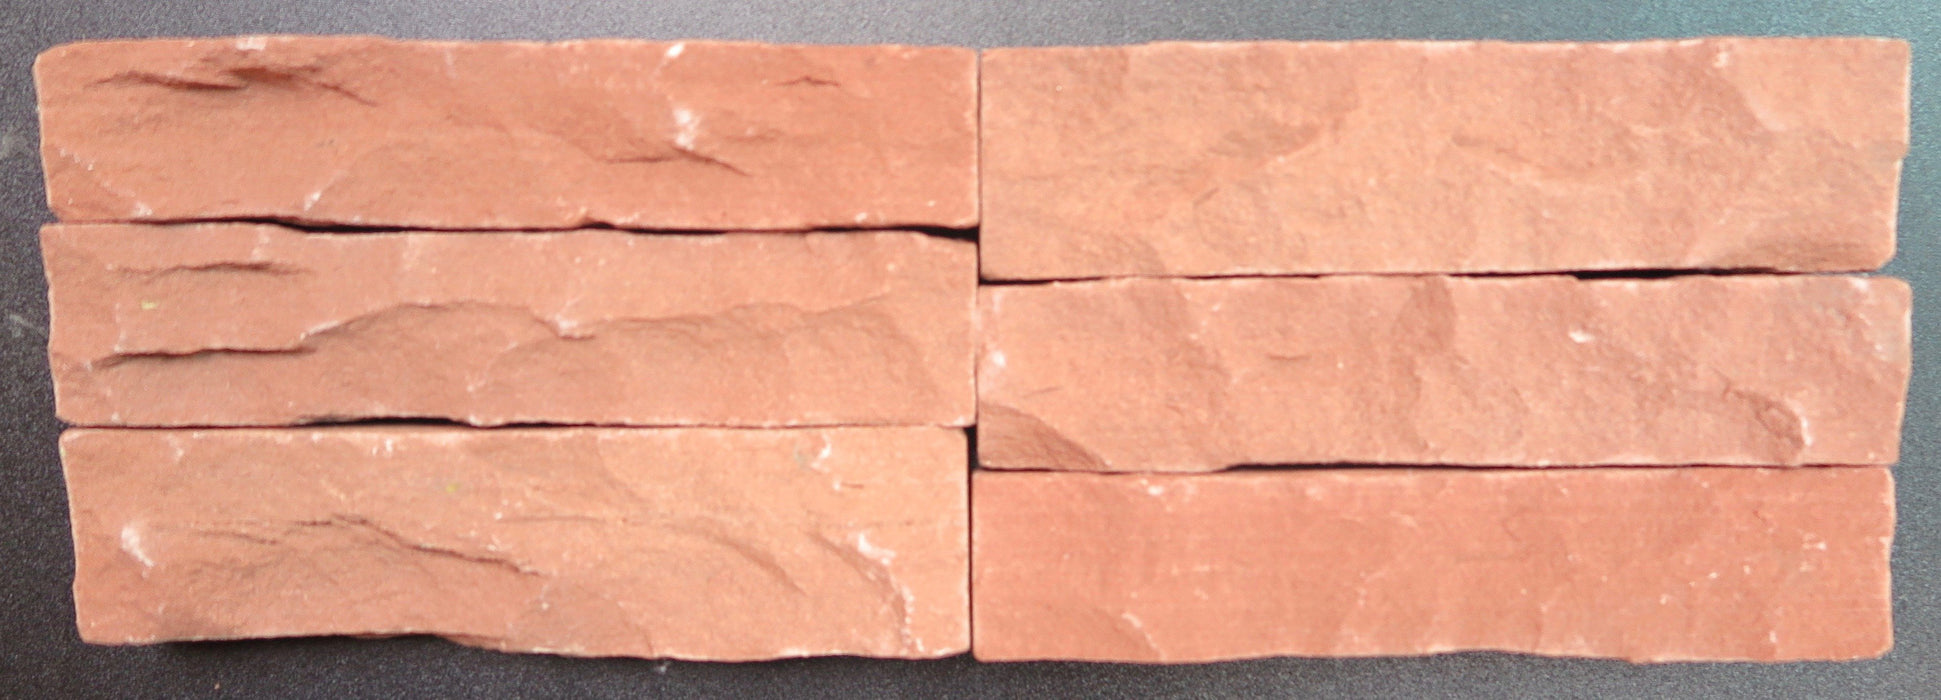 "Morning Glory Sandstone Ledger - 1"" x 7"" x 1 1/2"""